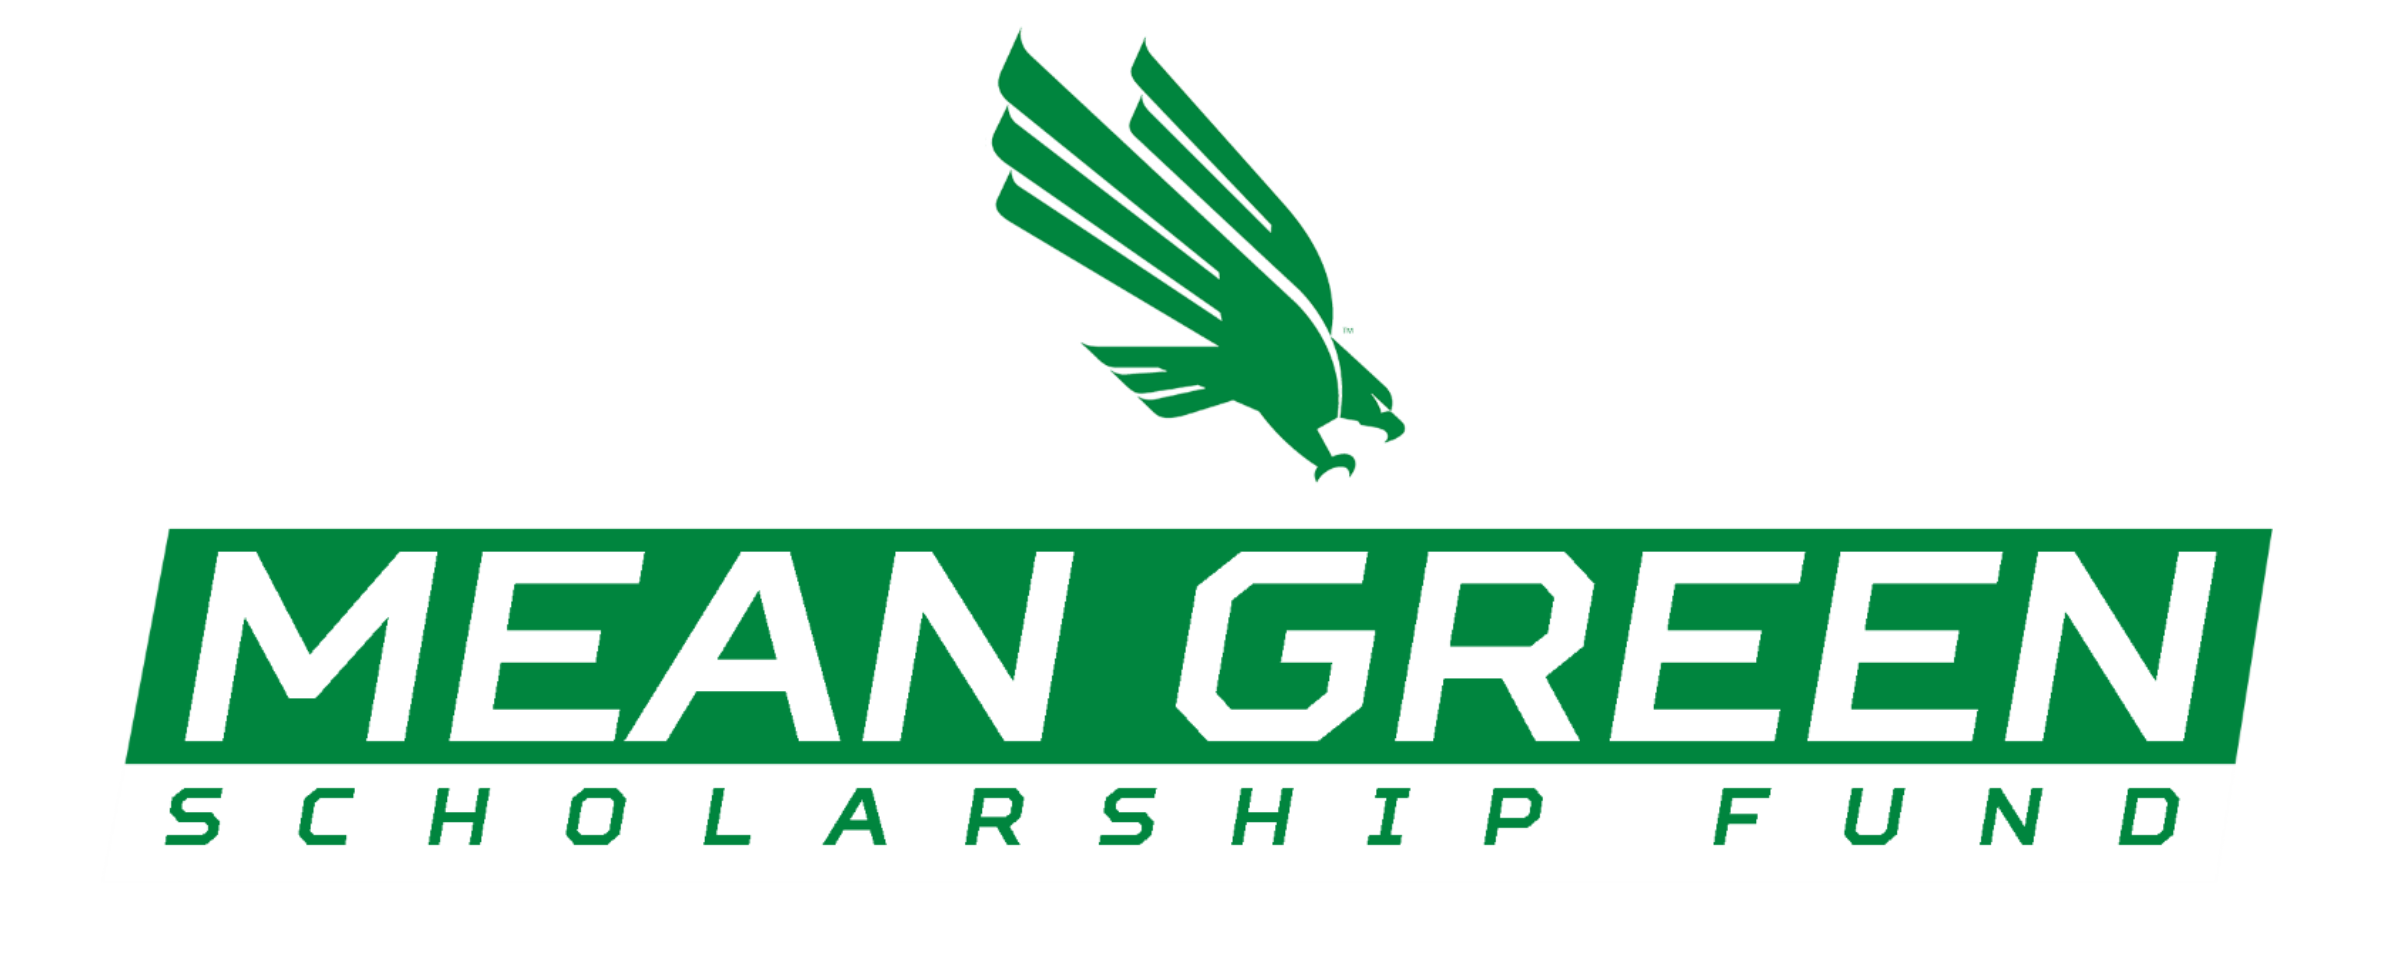 Mean Green Scholarship Fund Logo